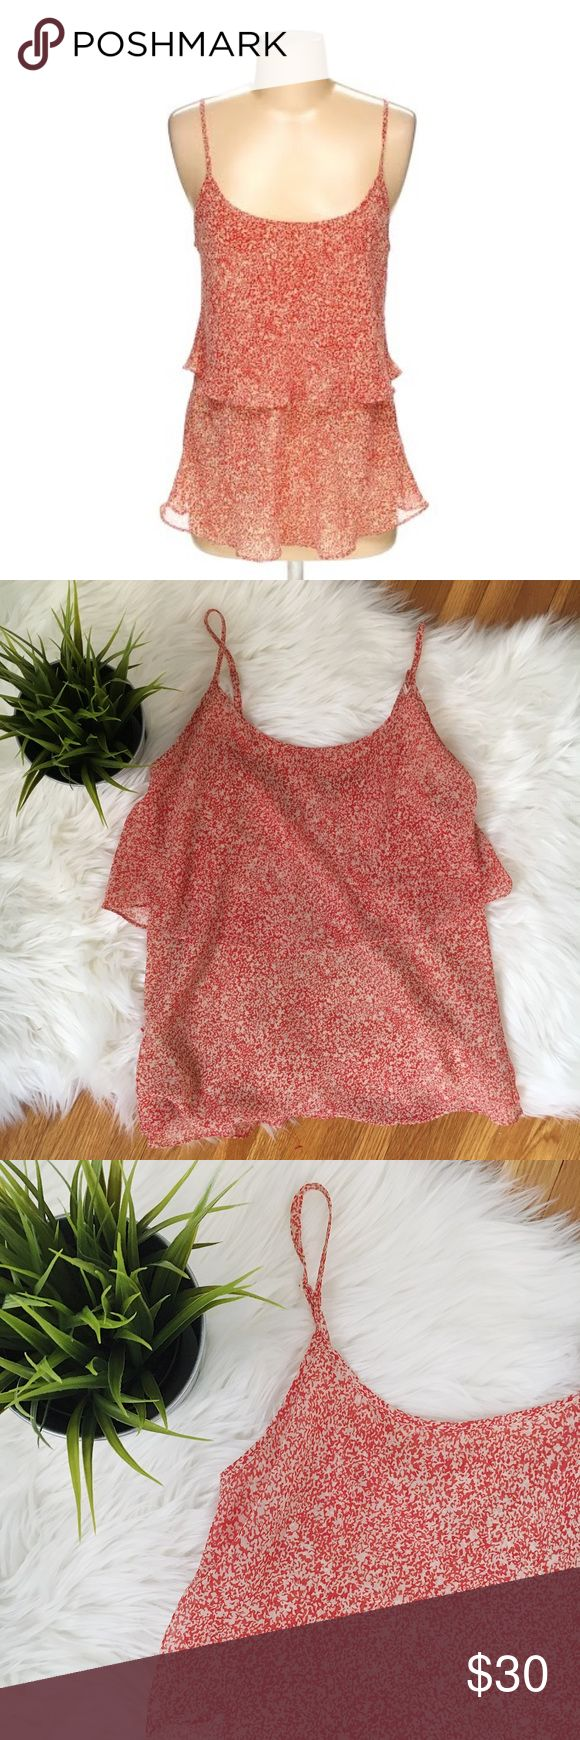 Cabi cami w/ adjustable straps & layer of ruffle Cami brand  Size x-small  Adjustable straps  Excellent condition CAbi Tops Camisoles